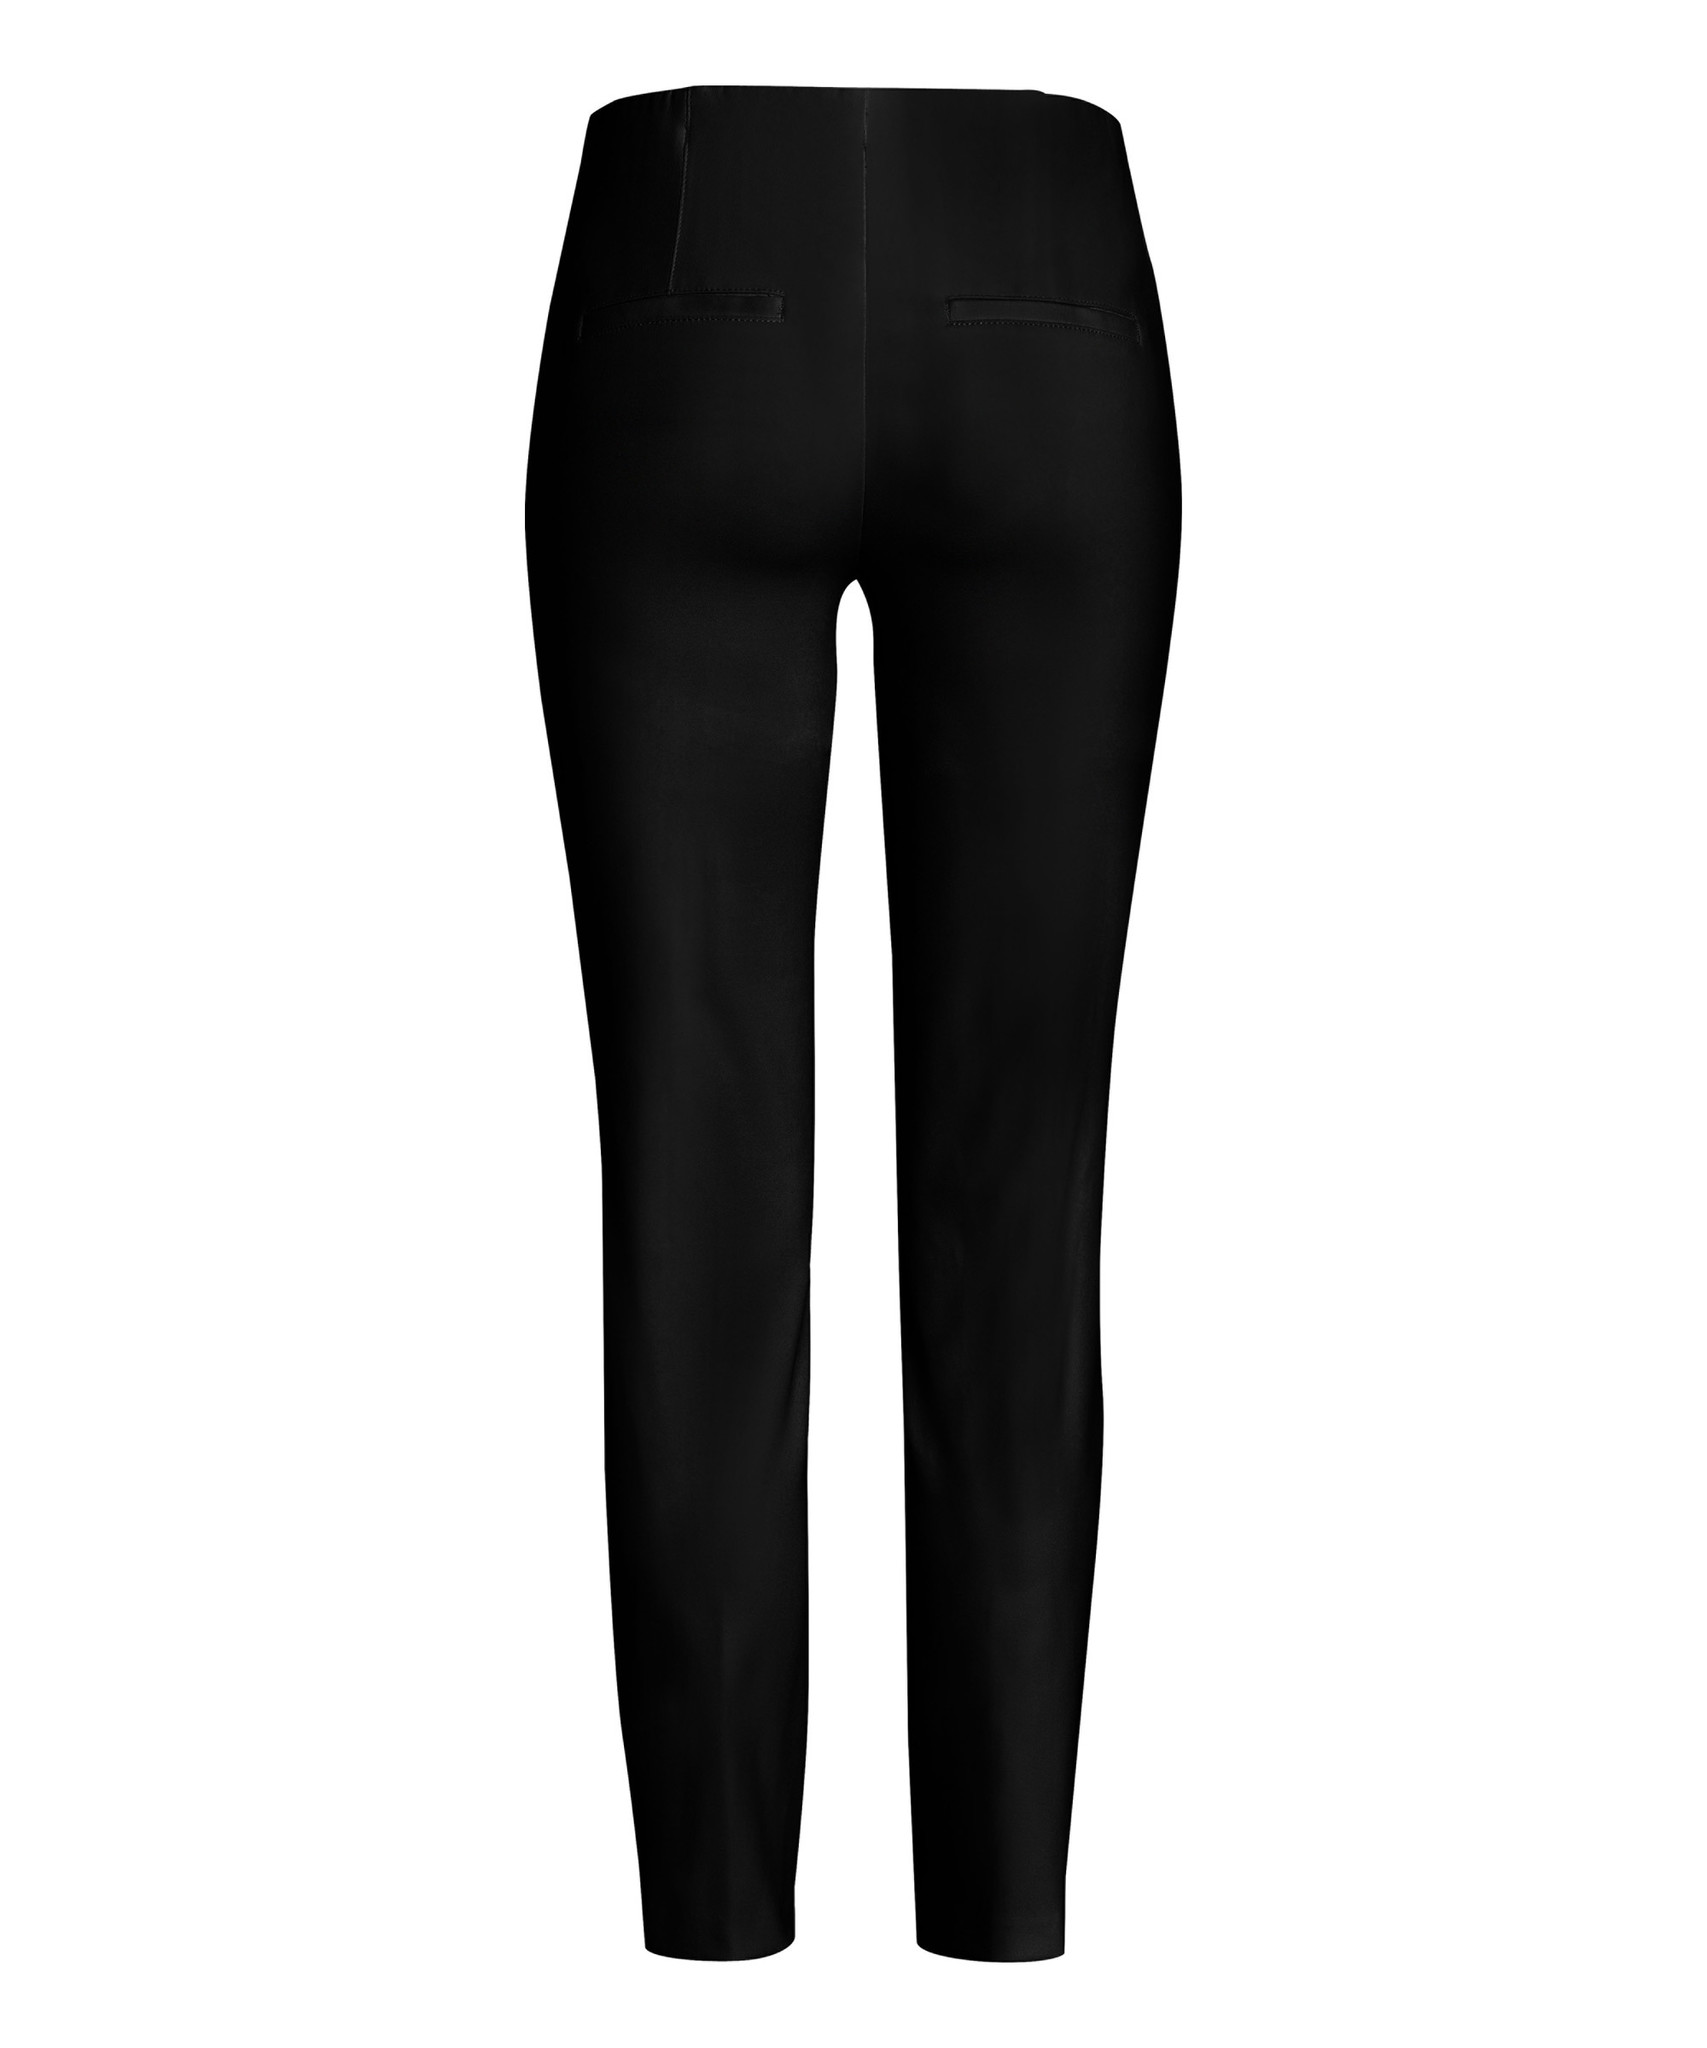 Cambio trousers ROS 6111-1